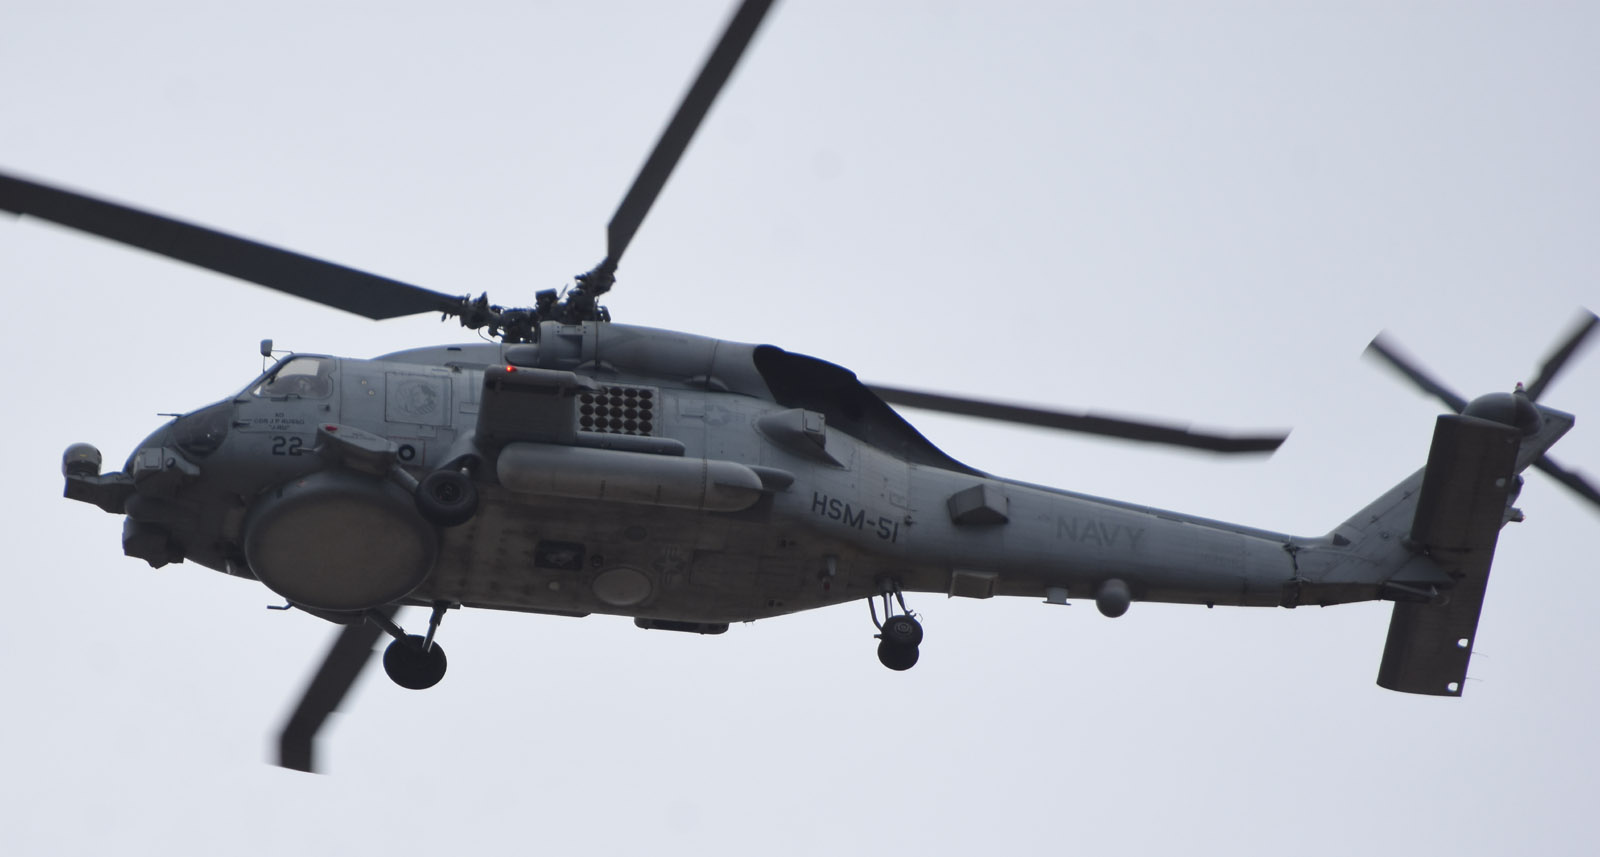 Mh60r190213g520